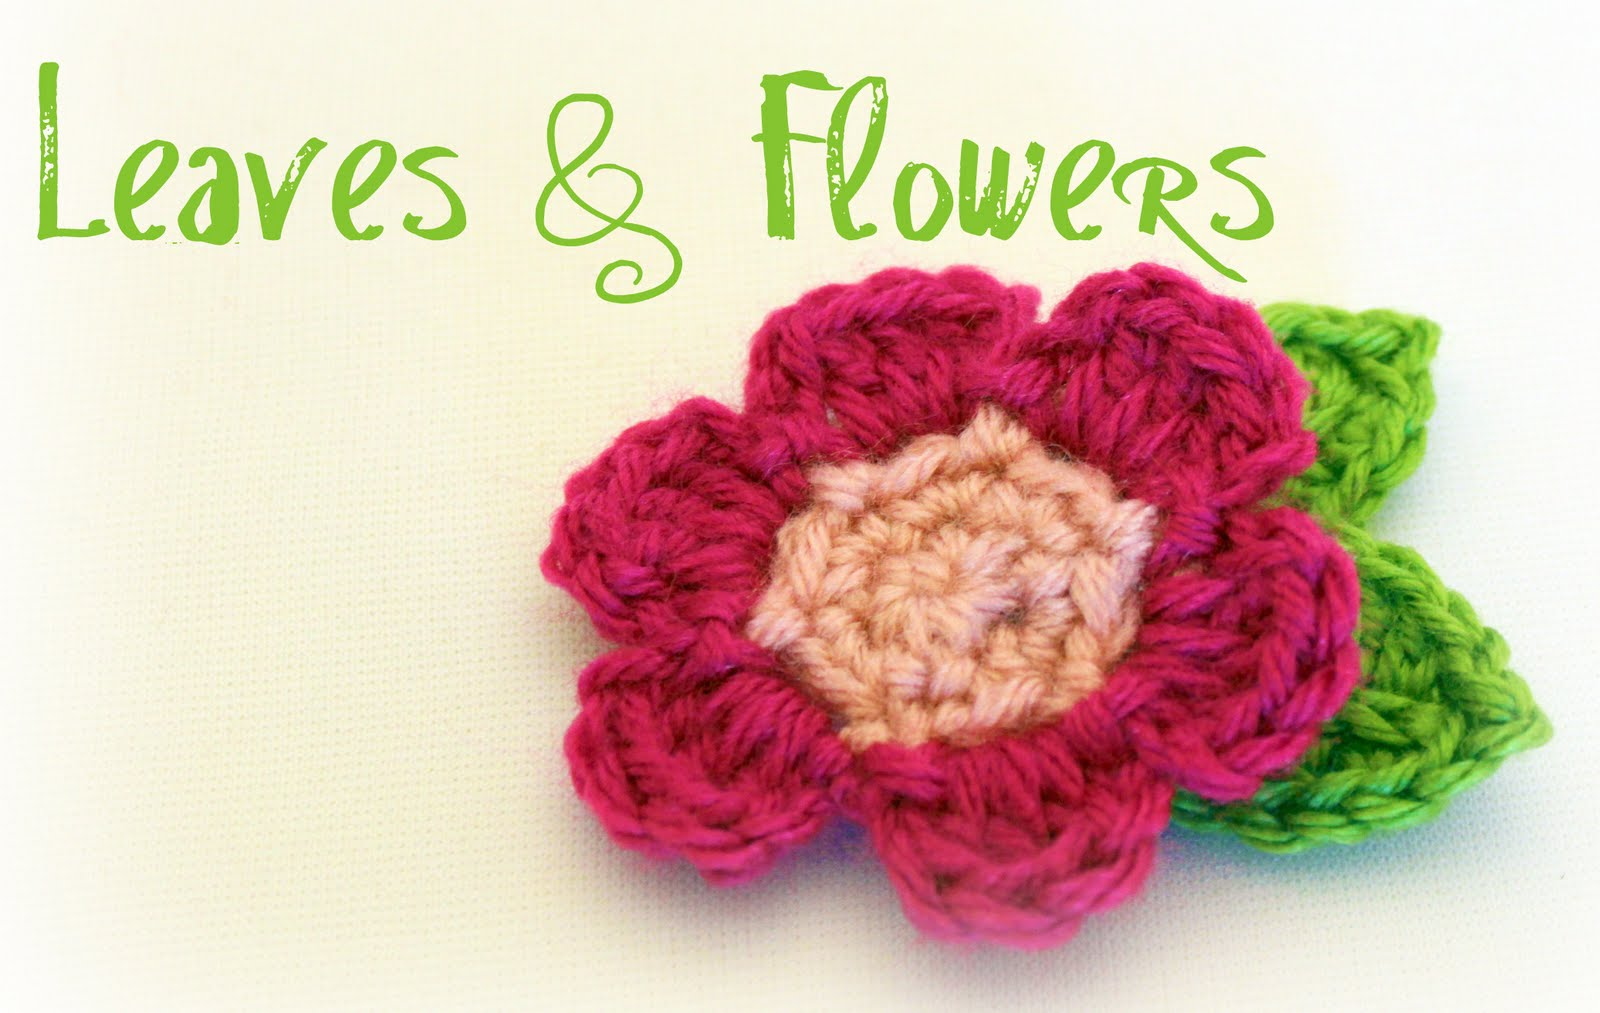 Crochet Patterns Of Flowers : Free Crochet Flower Power Patterns: Easy-to-Make Spring and Summer